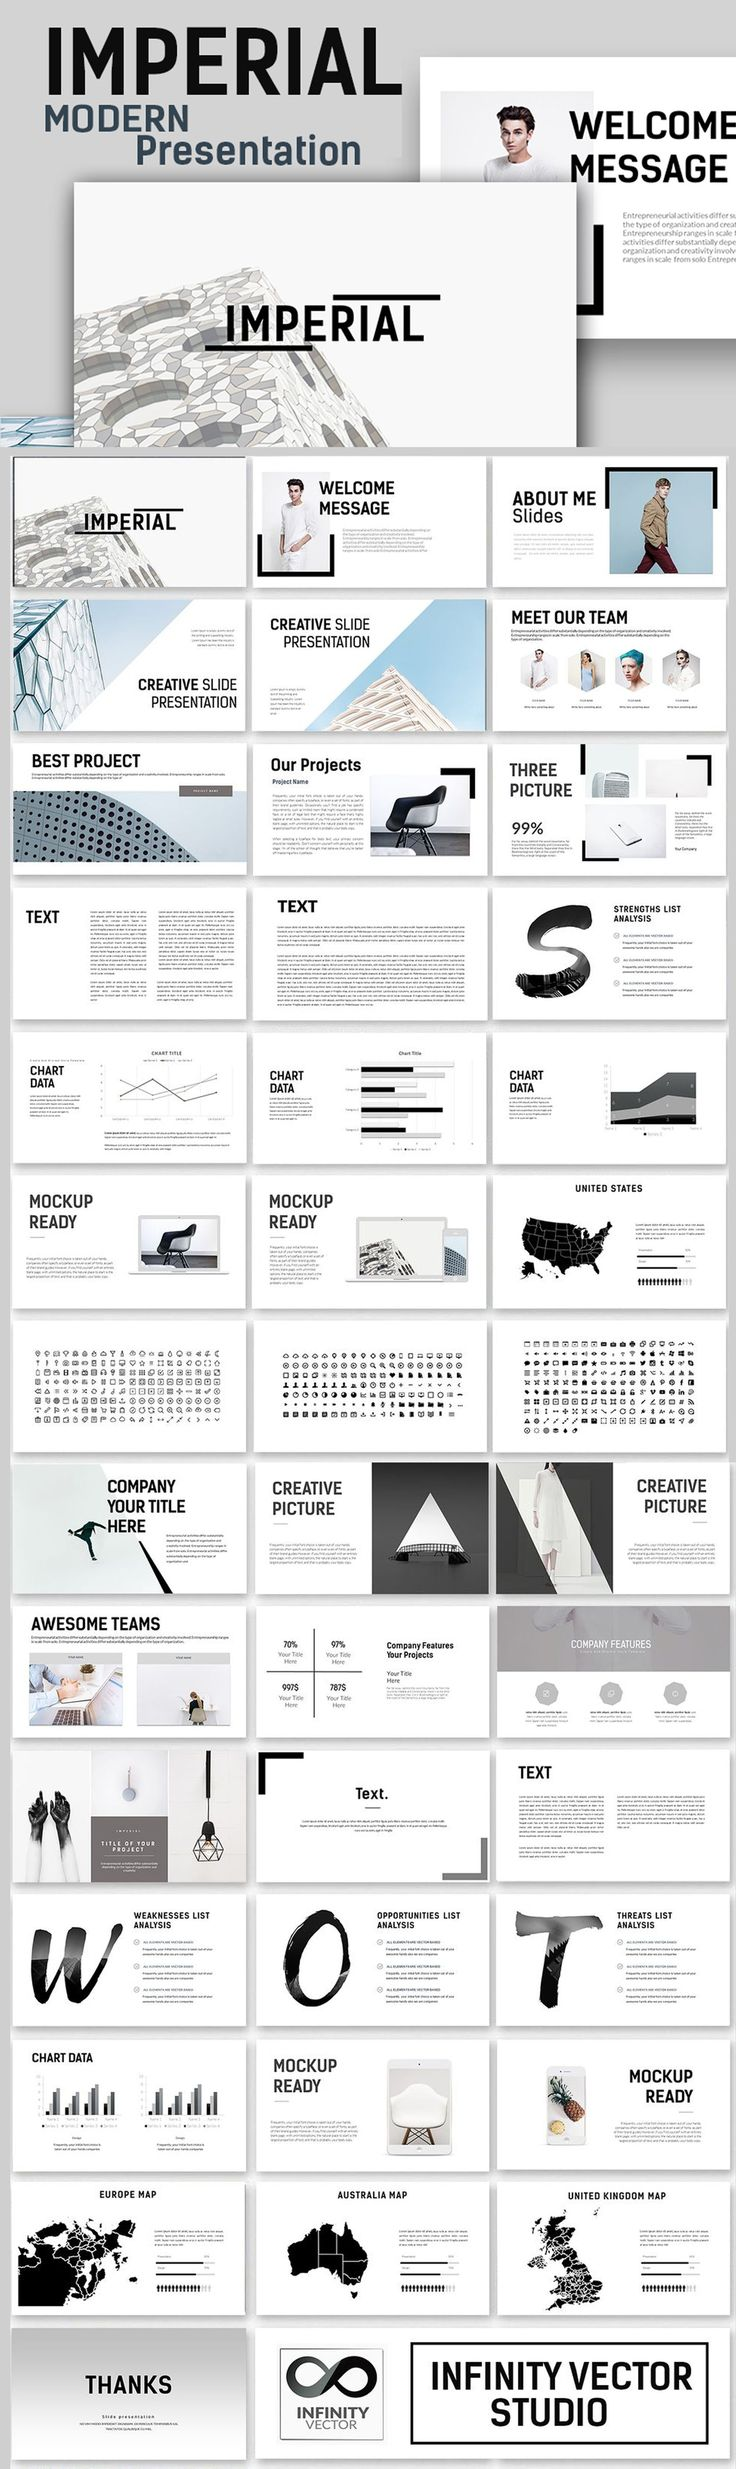 Best Research Powerpoint Templates Images On